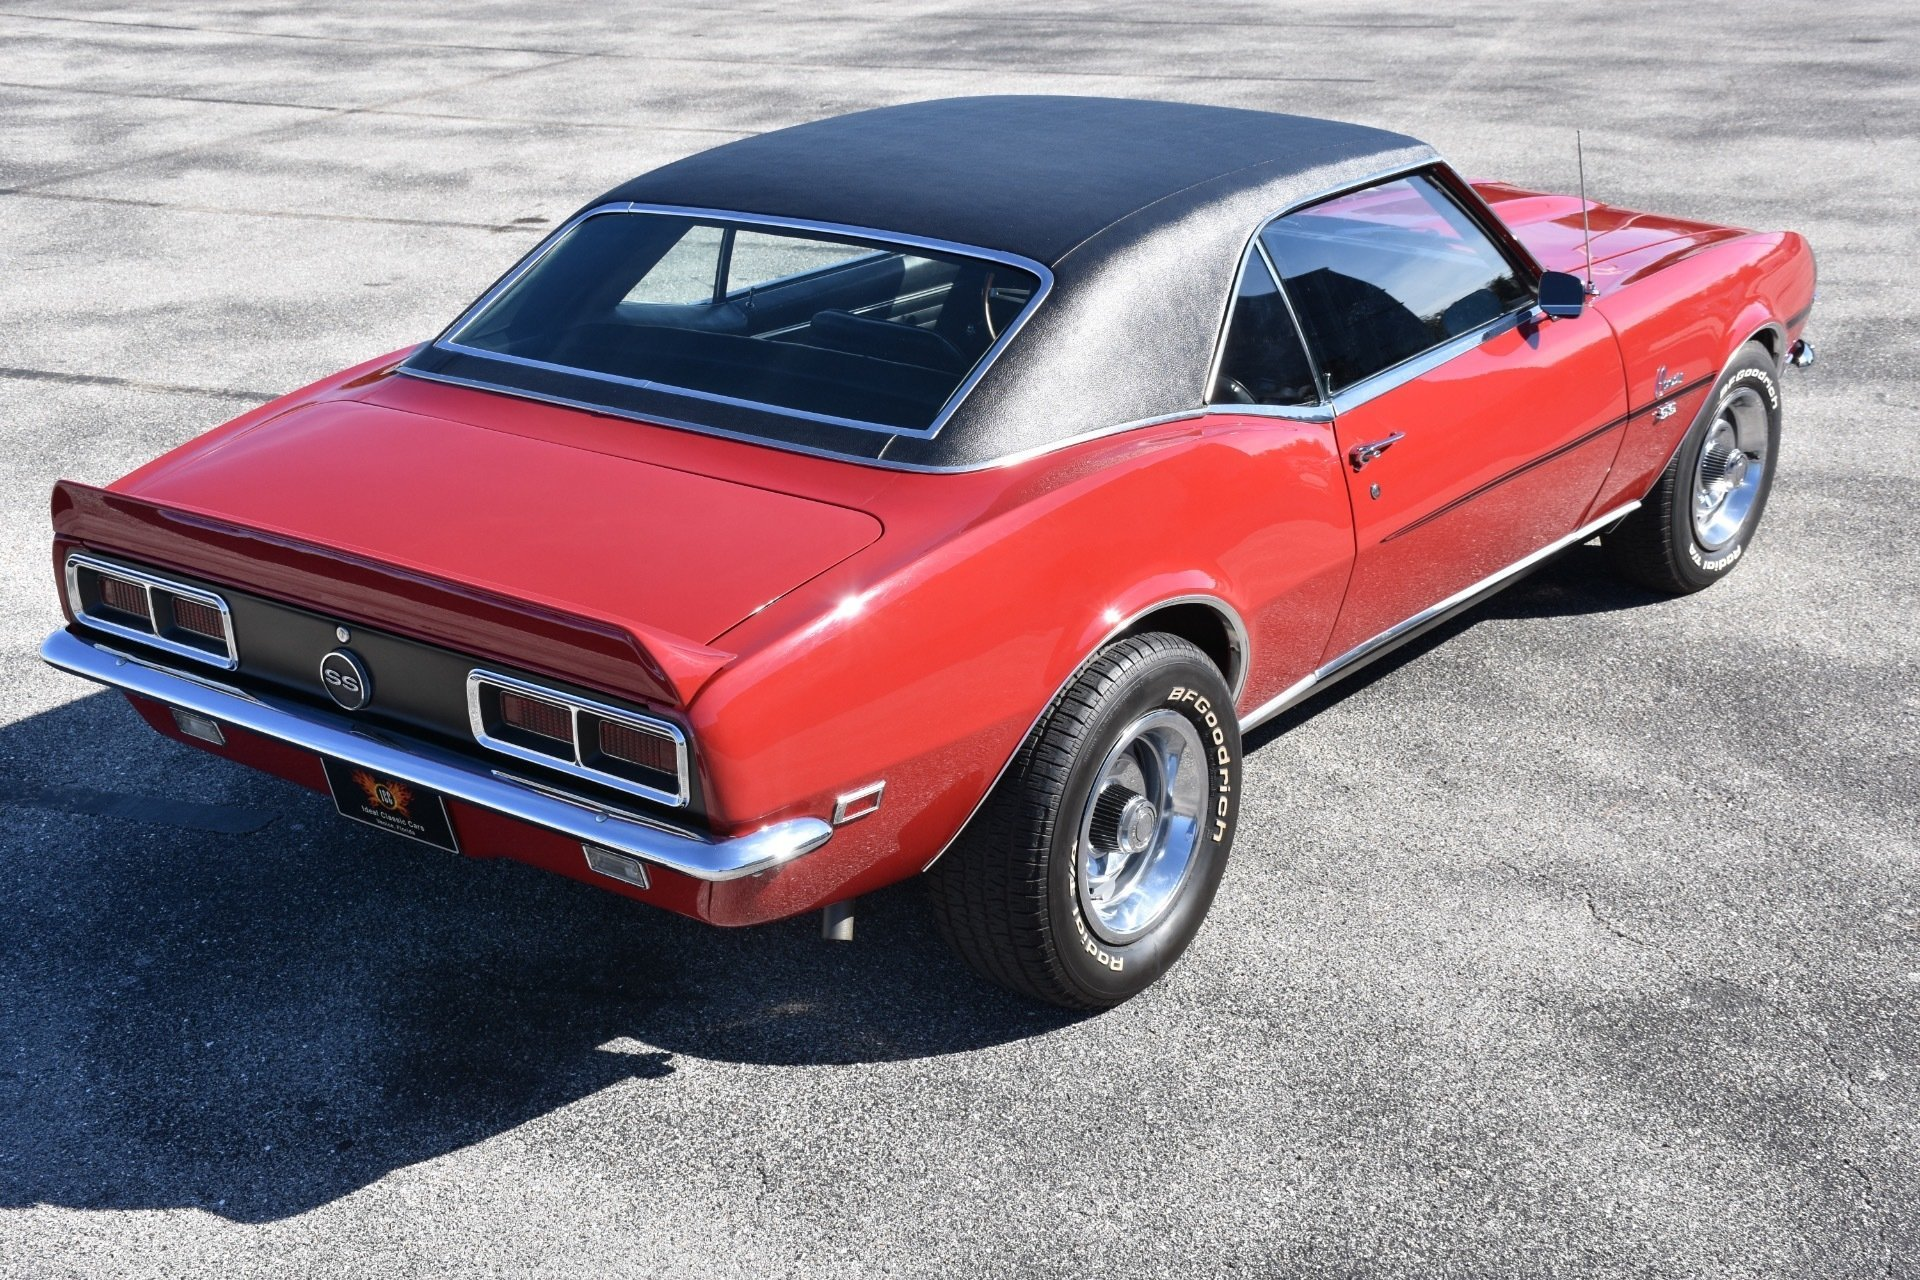 1968 Chevrolet Camaro Rs Ss Ideal Classic Cars Llc 44737a16dc3d Low Res